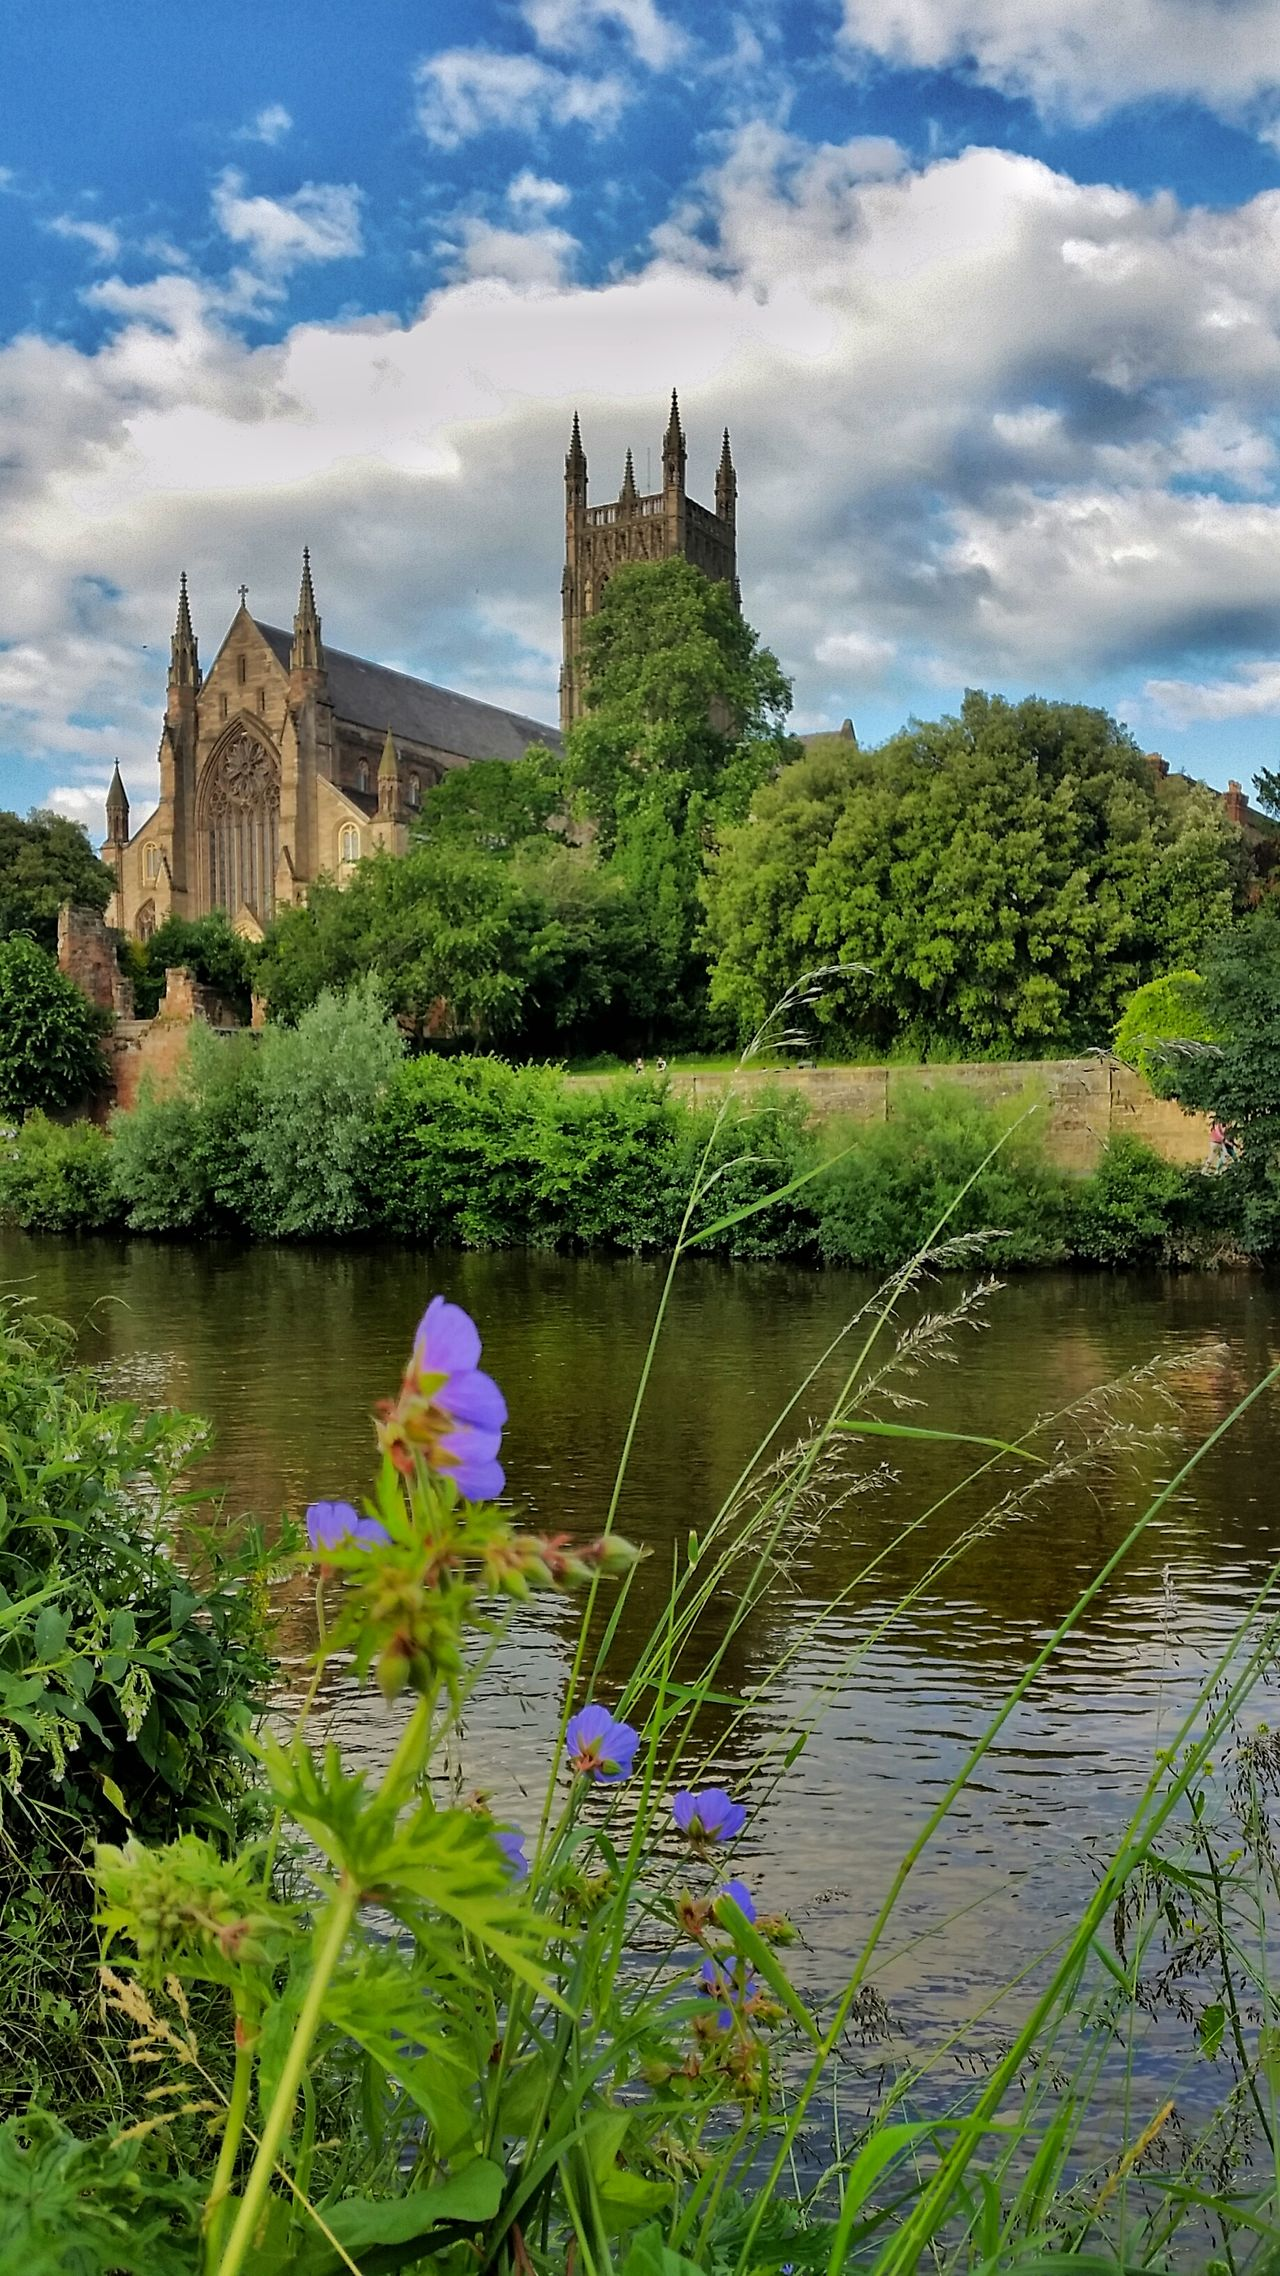 Worcester Cathedral King John's final resting place! River Severn Experimental (Local Commision Work) Historical Building Flowers Cathedral Water Reflections Architectural Detail Summertime England 🌹 Exceptional Photographs Tadaa Community Architecture_collection Eye4photography  Striving For Excellence I Love My City EyeEm Best Shots Water Reflection EyeEm Masterclass Purple Flowers Purple Showcase June